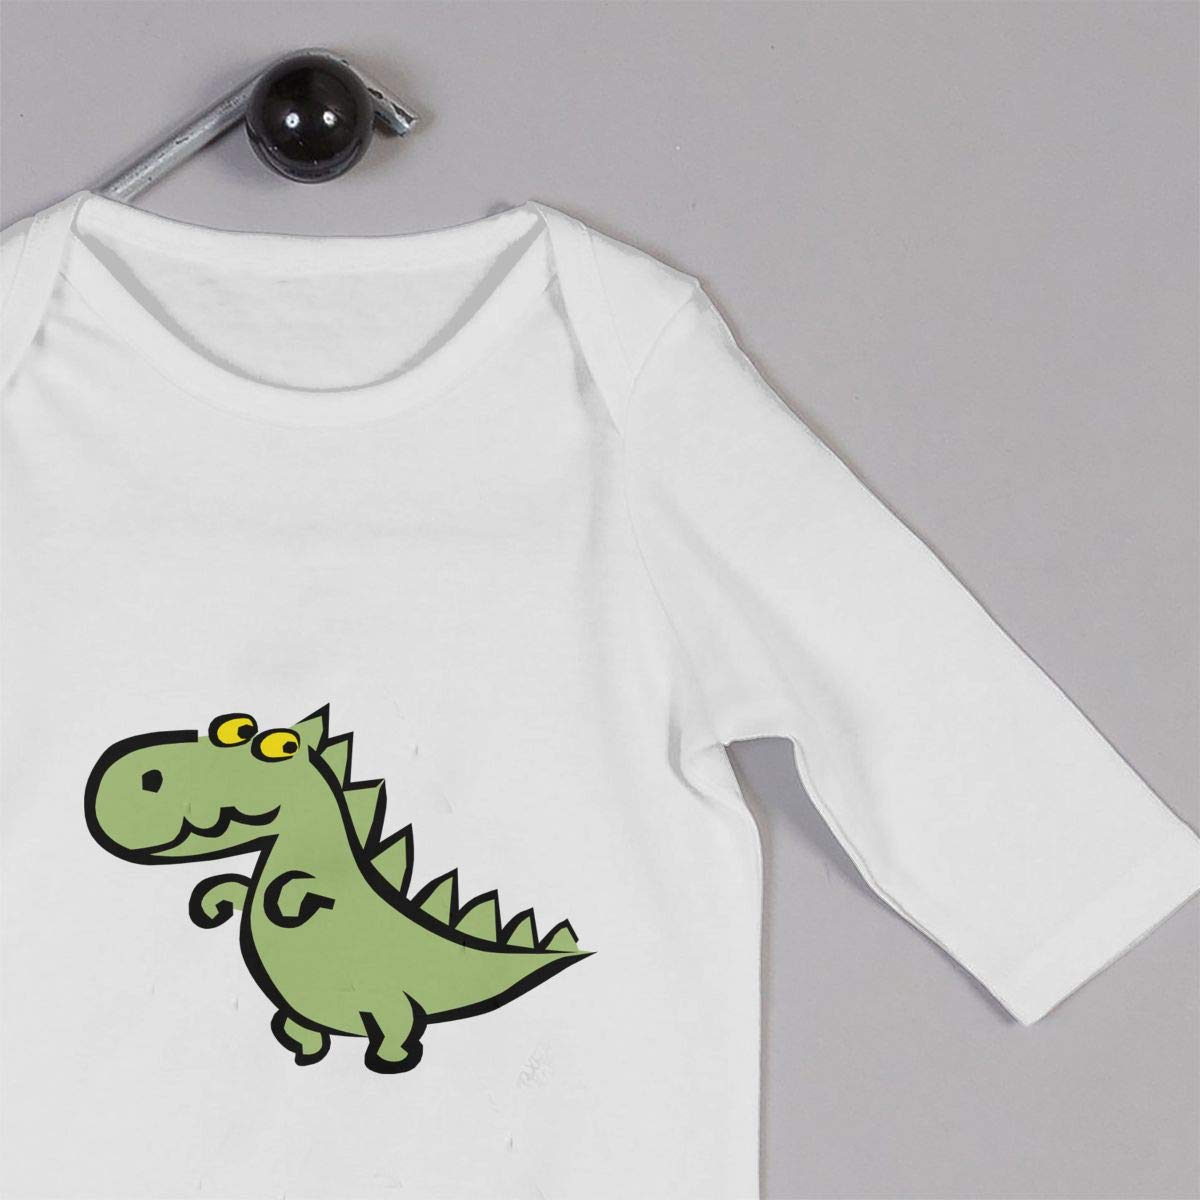 KAYERDELLE The Cute Dinosaur Long Sleeve Unisex Baby Outfit for 6-24 Months Infant